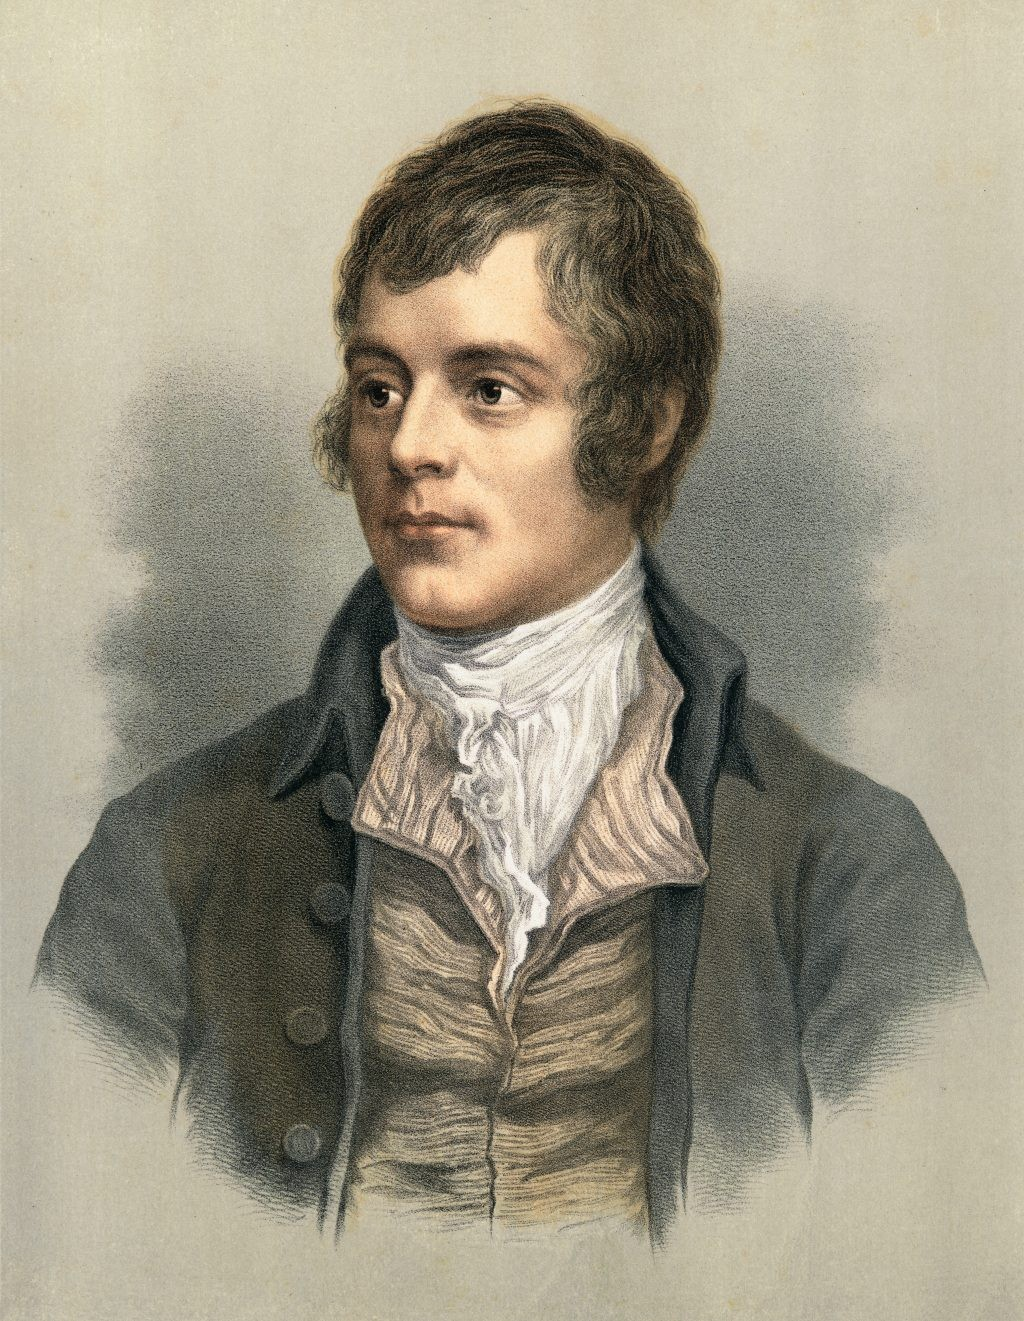 Lithograph portrait of Scottish poet Robert Burns. (Photo by Stock Montage/Getty Images)